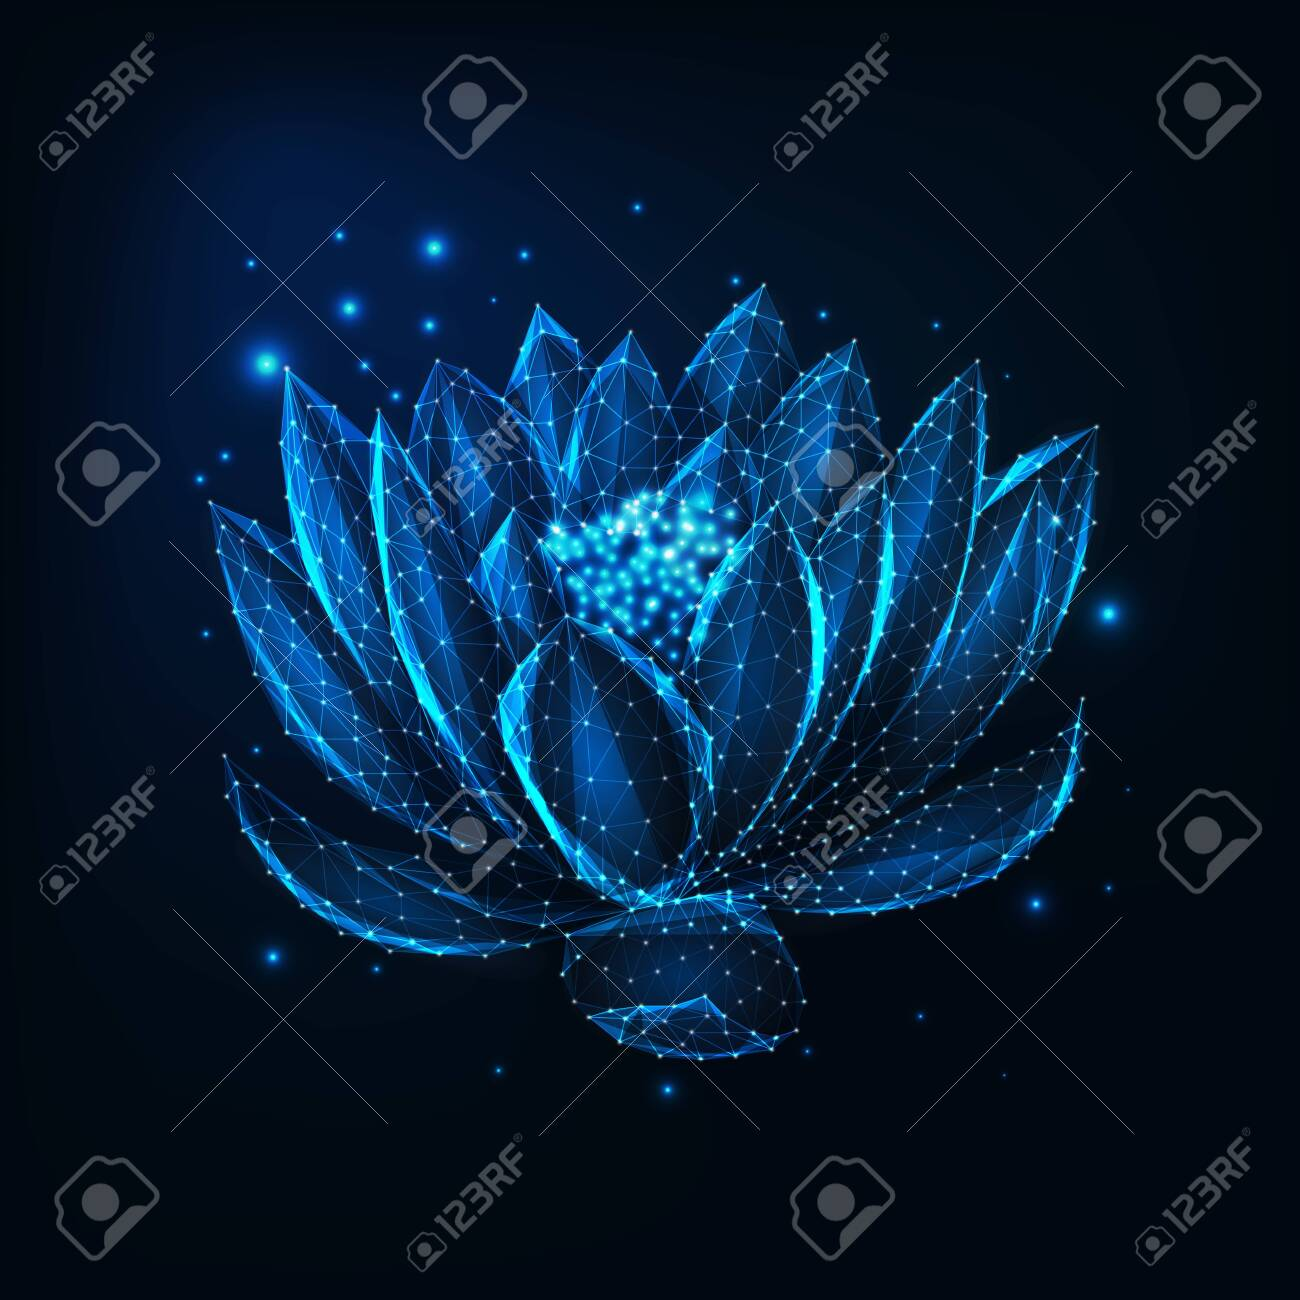 Beautiful Glowing Low Polygonal Floating Waterlily Lotus Flower